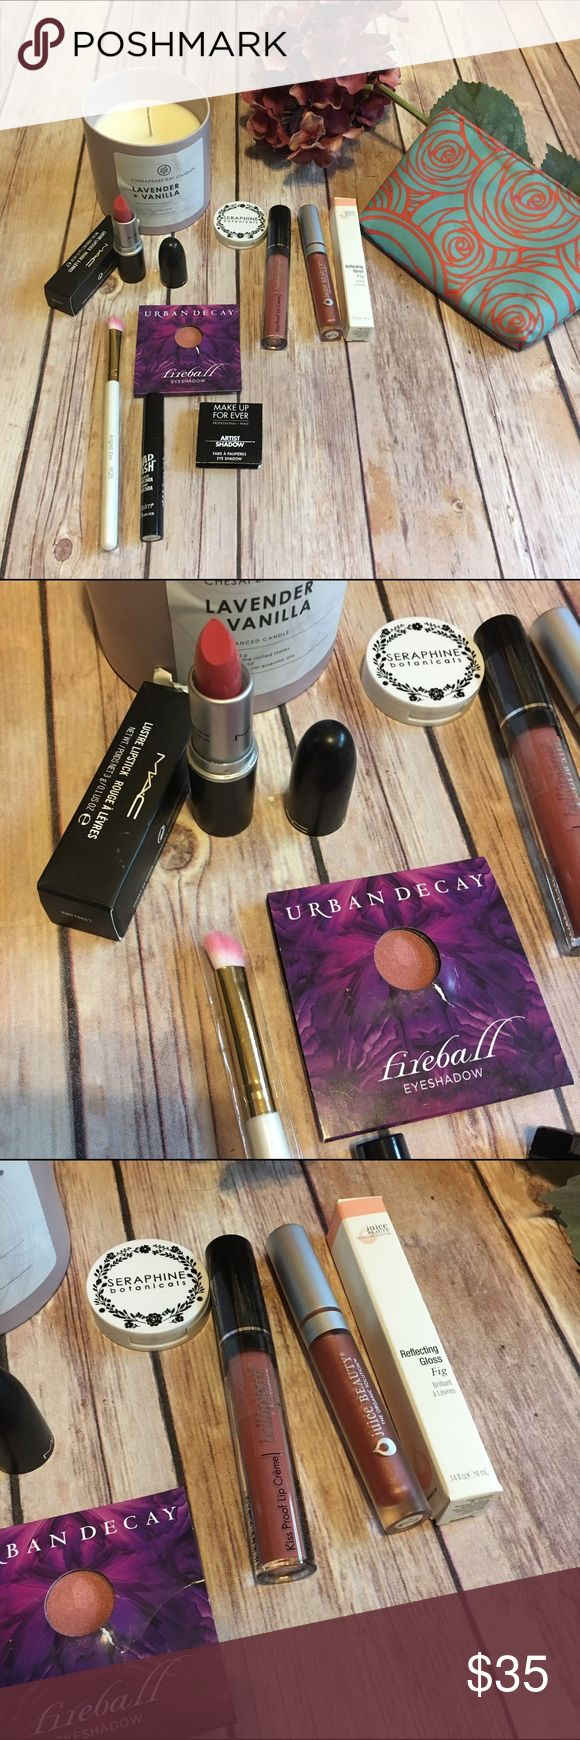 Make up kit with bag💕💕NWT In this fabulous spring make up kit you will get:  Mac Lustre lipstick in lovelorn, The Balm mad lash mascara in black, bellapierre kiss proof lip cream in vanity pink, Juice Beauty reflecting gloss in fig, soft angled eye brush, Urban Decay fireball shadow, make up forever artist shadow in 6p01 which is a taupe shimmer, and seraphina botanicals happy hibiscus loose natural blush and a cute spring make up bag. All products are new and never tested. Urban Decay…